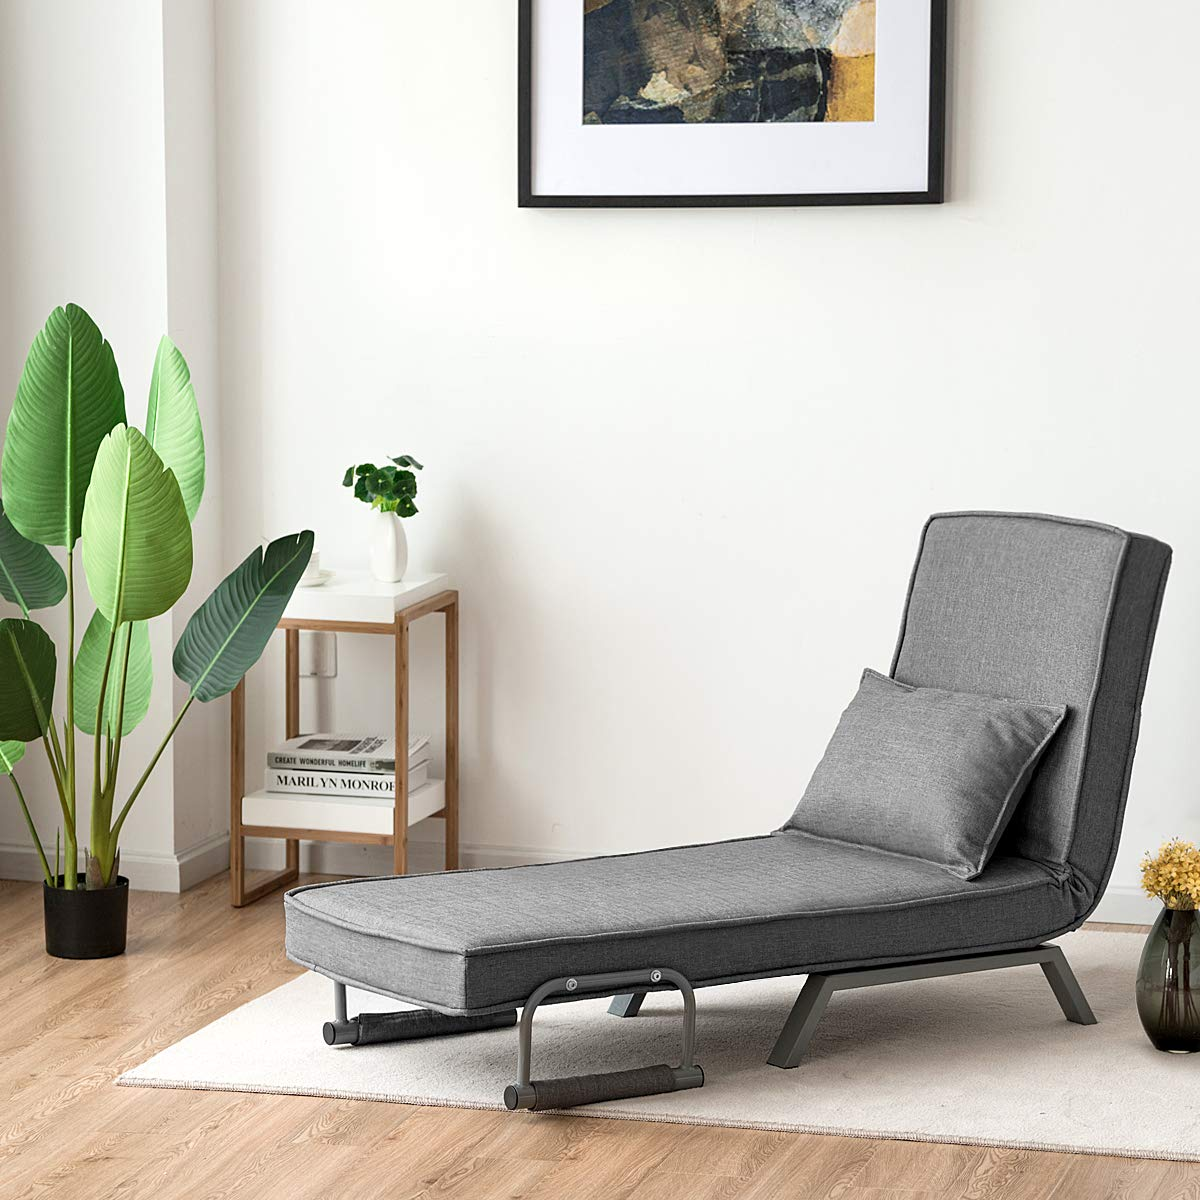 Giantex Convertible Sofa Bed Folding Arm Chair Sleeper Gray Mental Frame with Detachable Armrest Cover Home Office Furniture with Pillow 5 Position Recliner Full Padded Lounger Couch Bed